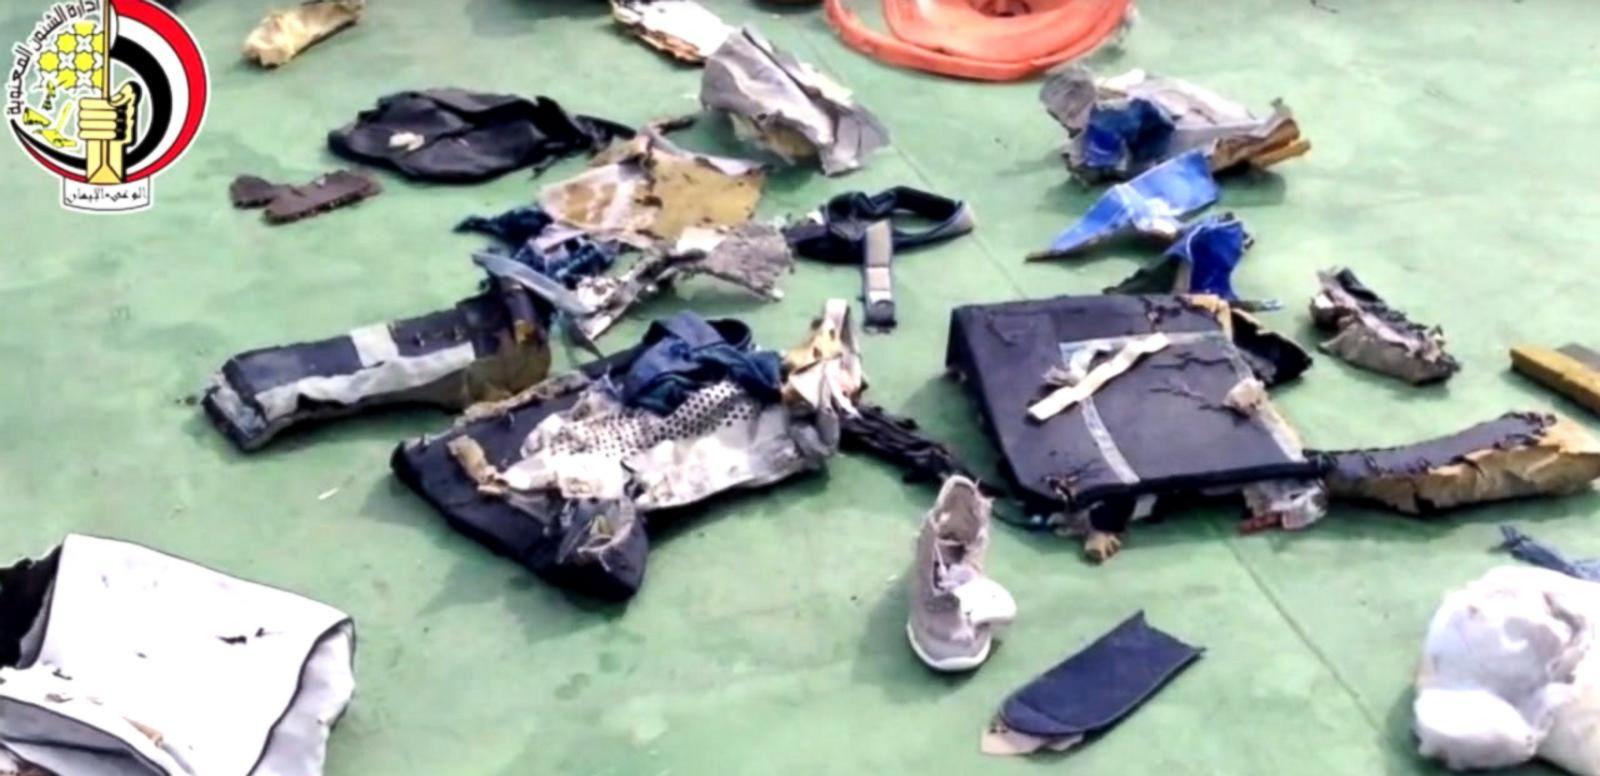 VIDEO; New Details in EgyptAir Crash Mystery